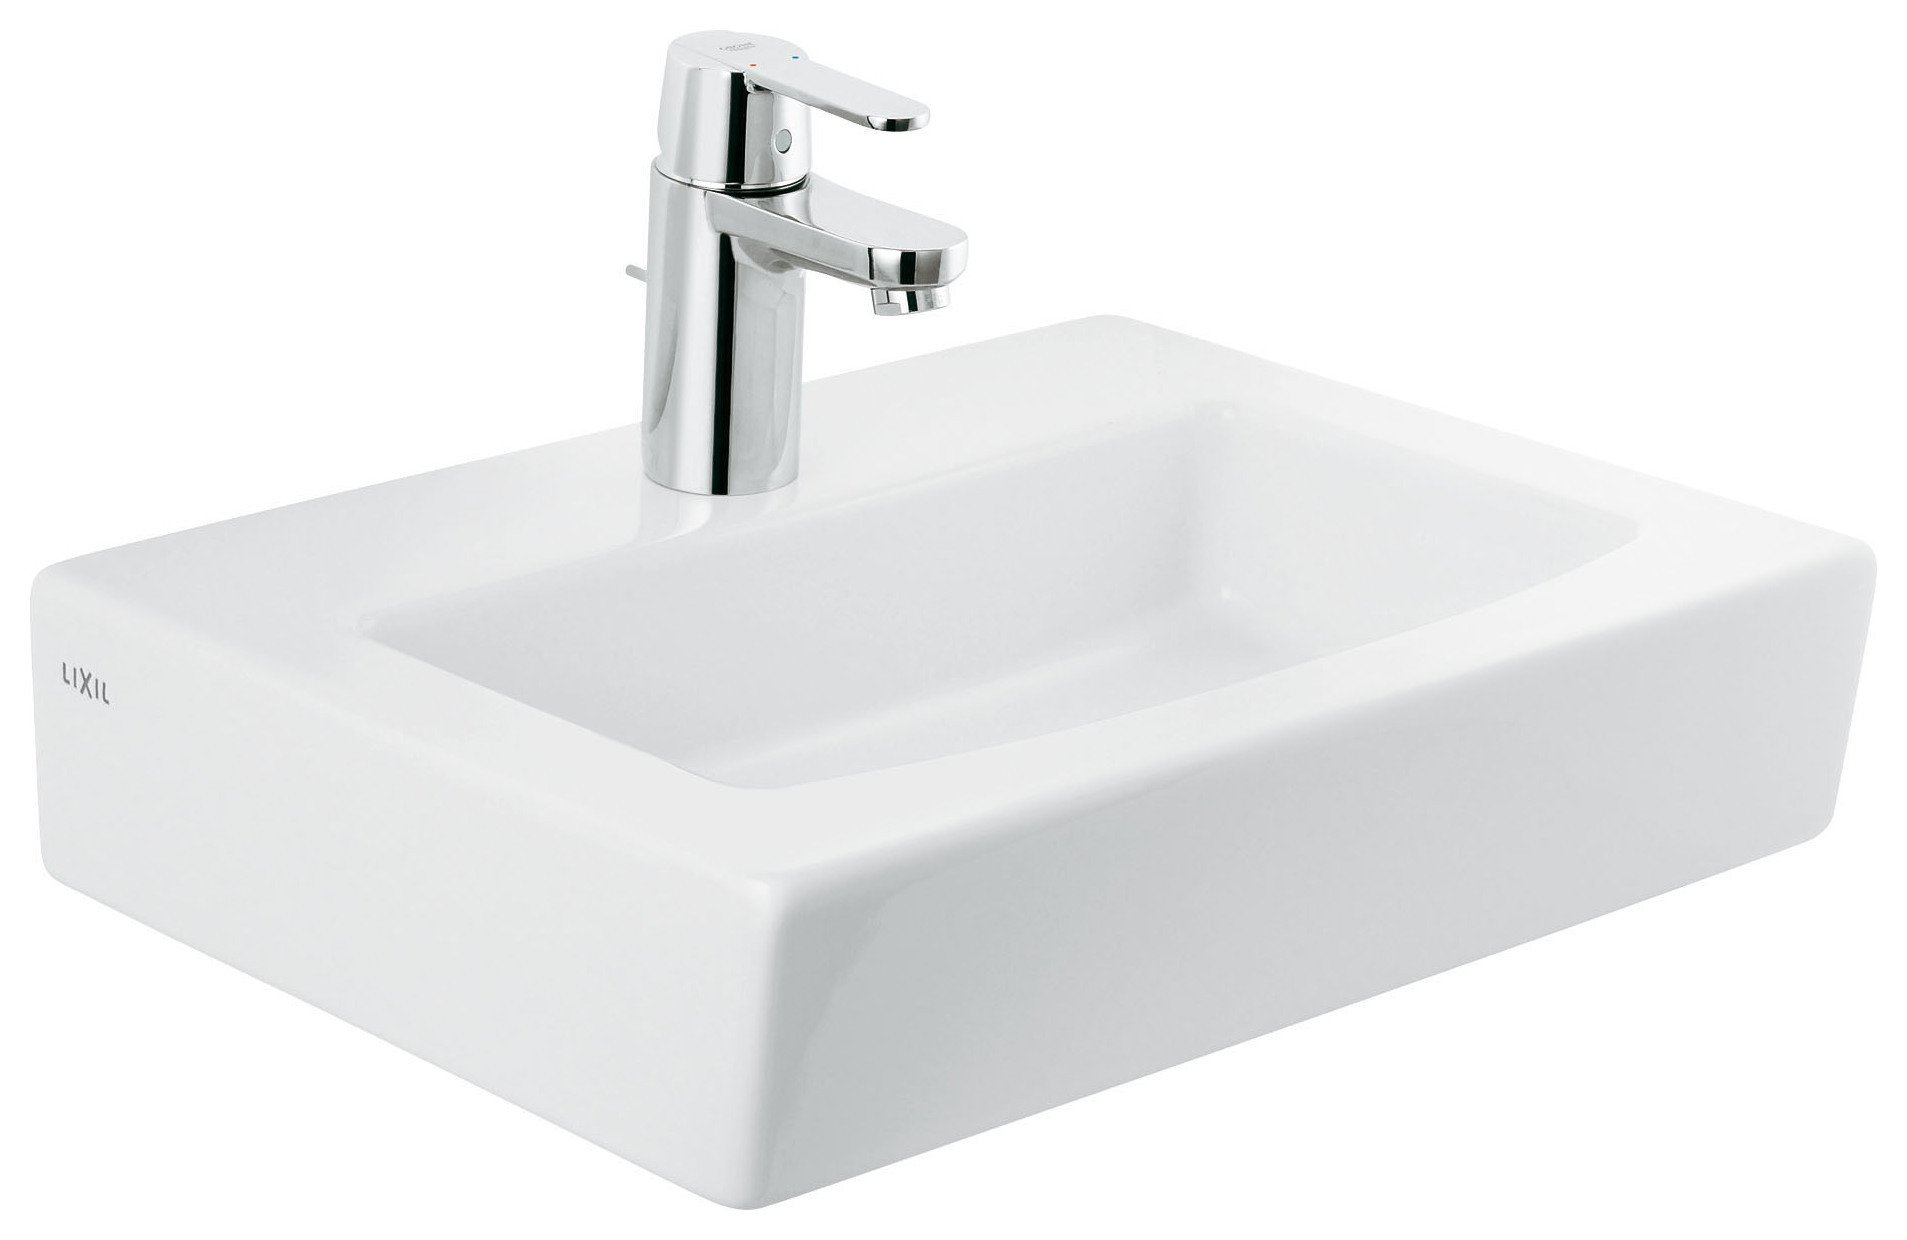 Grohe Get 45cm Square Basin Mixer Tap.